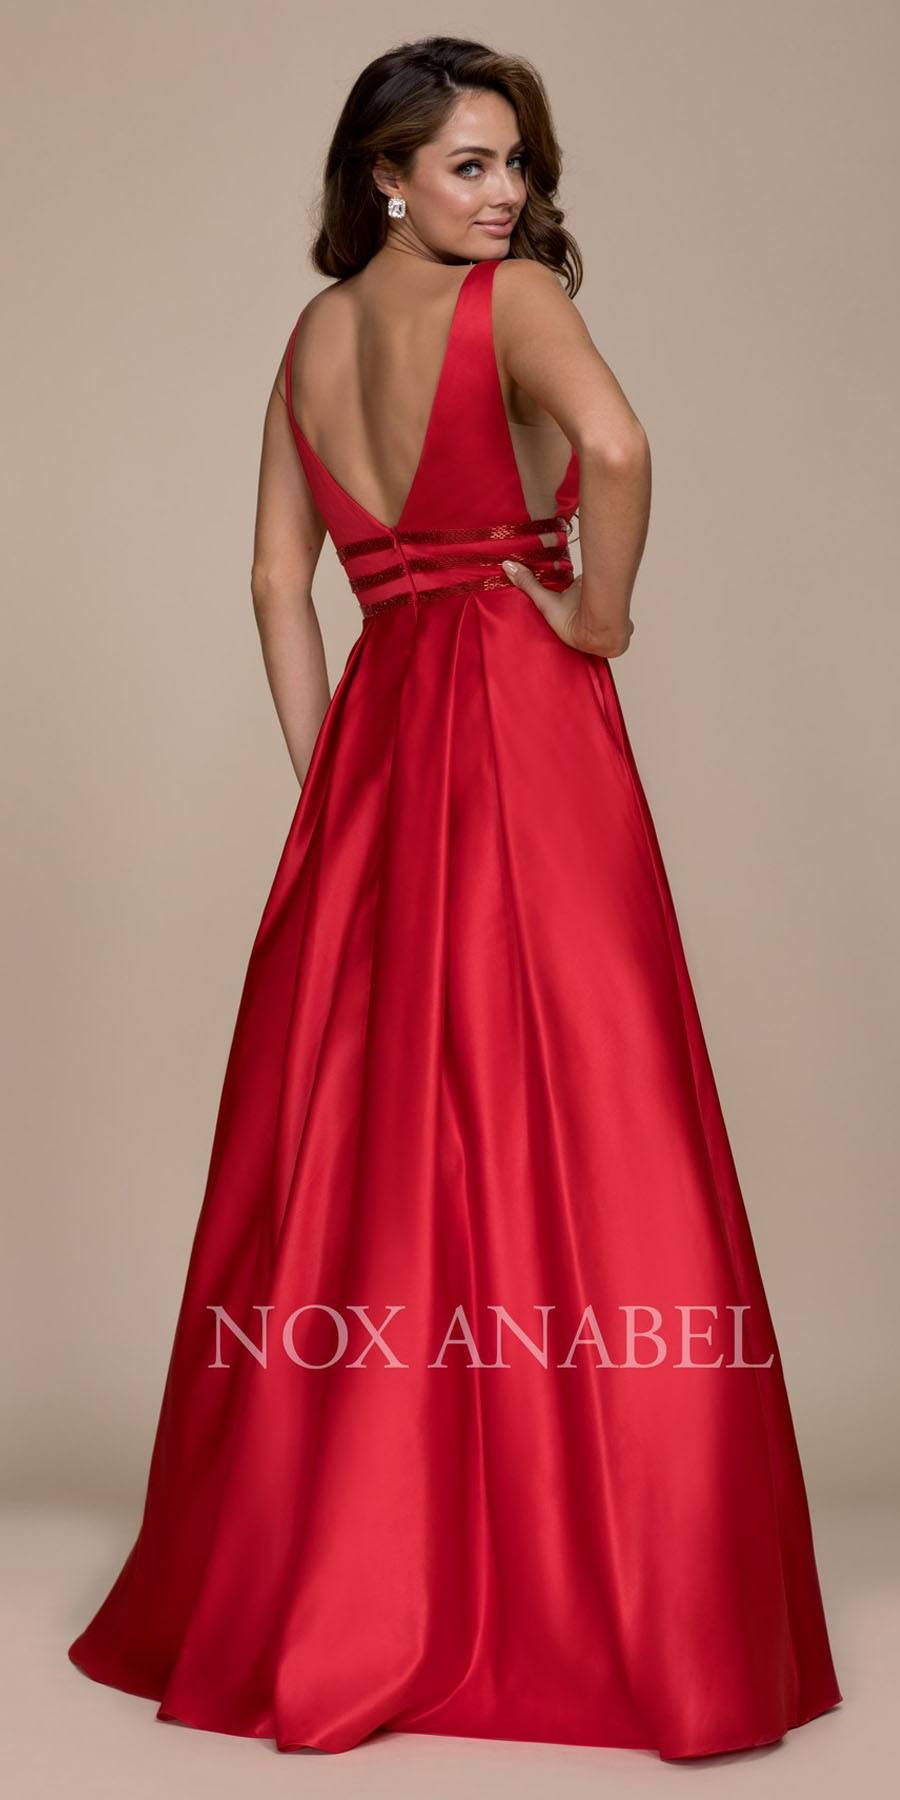 70f2aa362b1 Nox Anabel M130 Red V-Neck Long Prom Dress Sheer Cut Out with ...